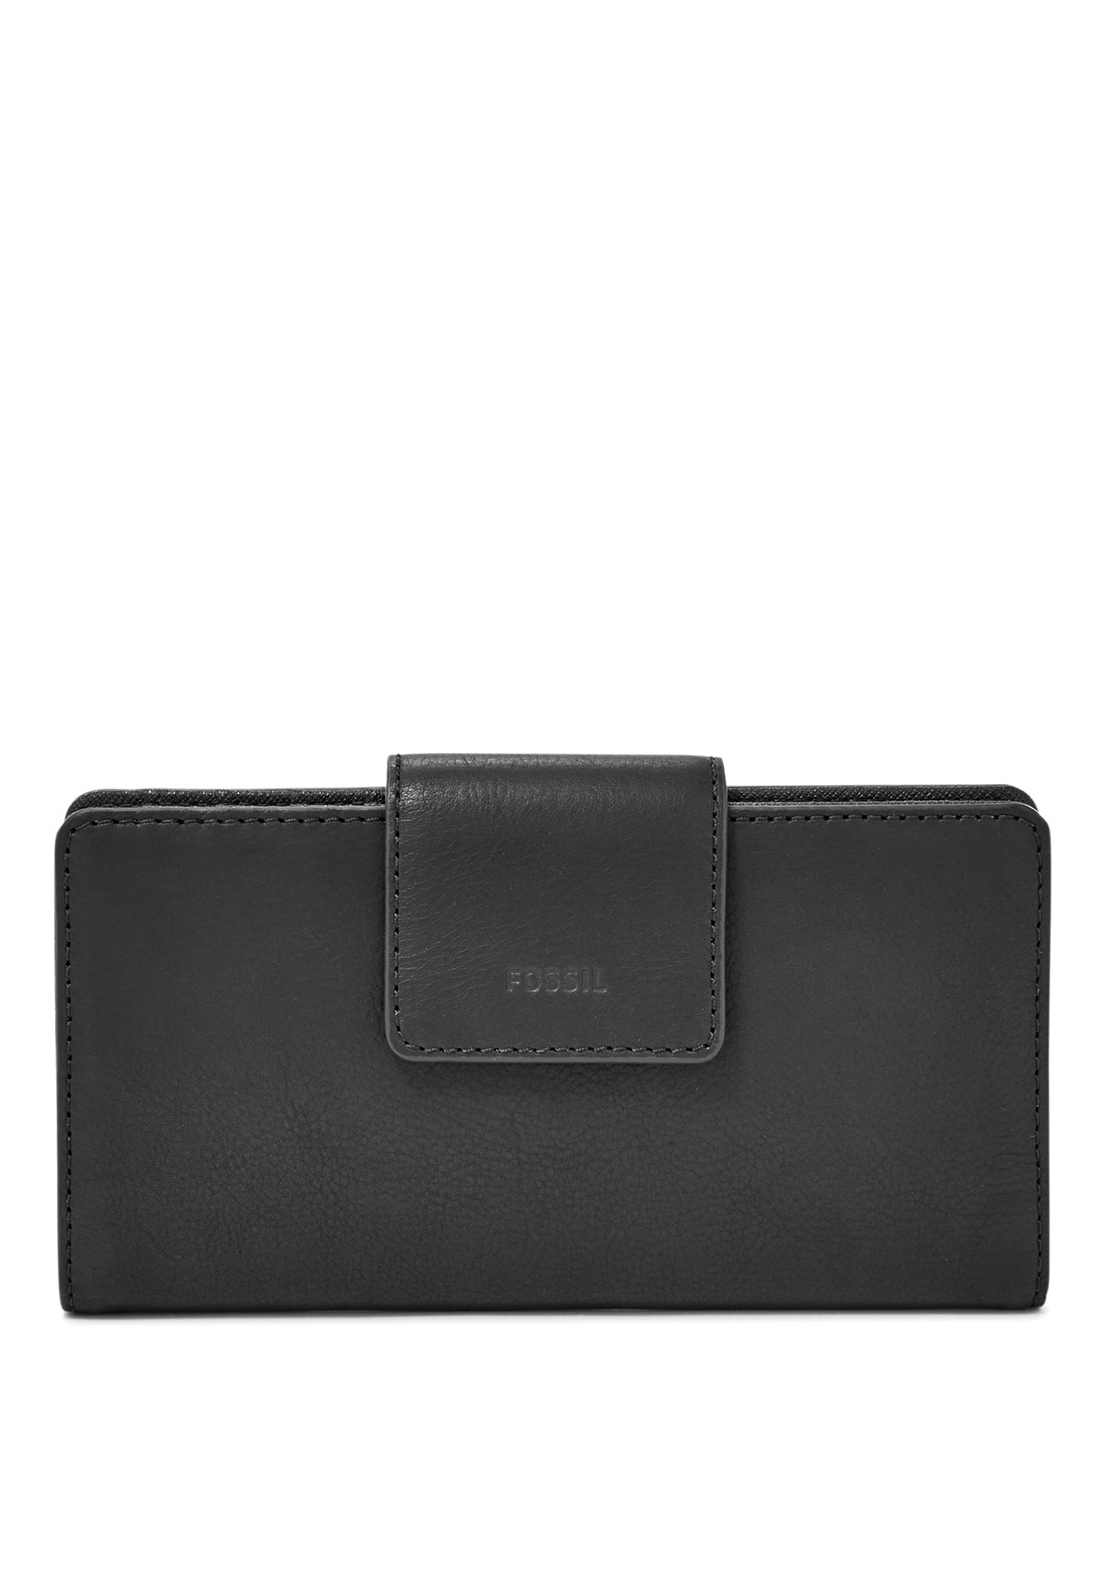 Fossil Emma Leather Tab Purse, Black